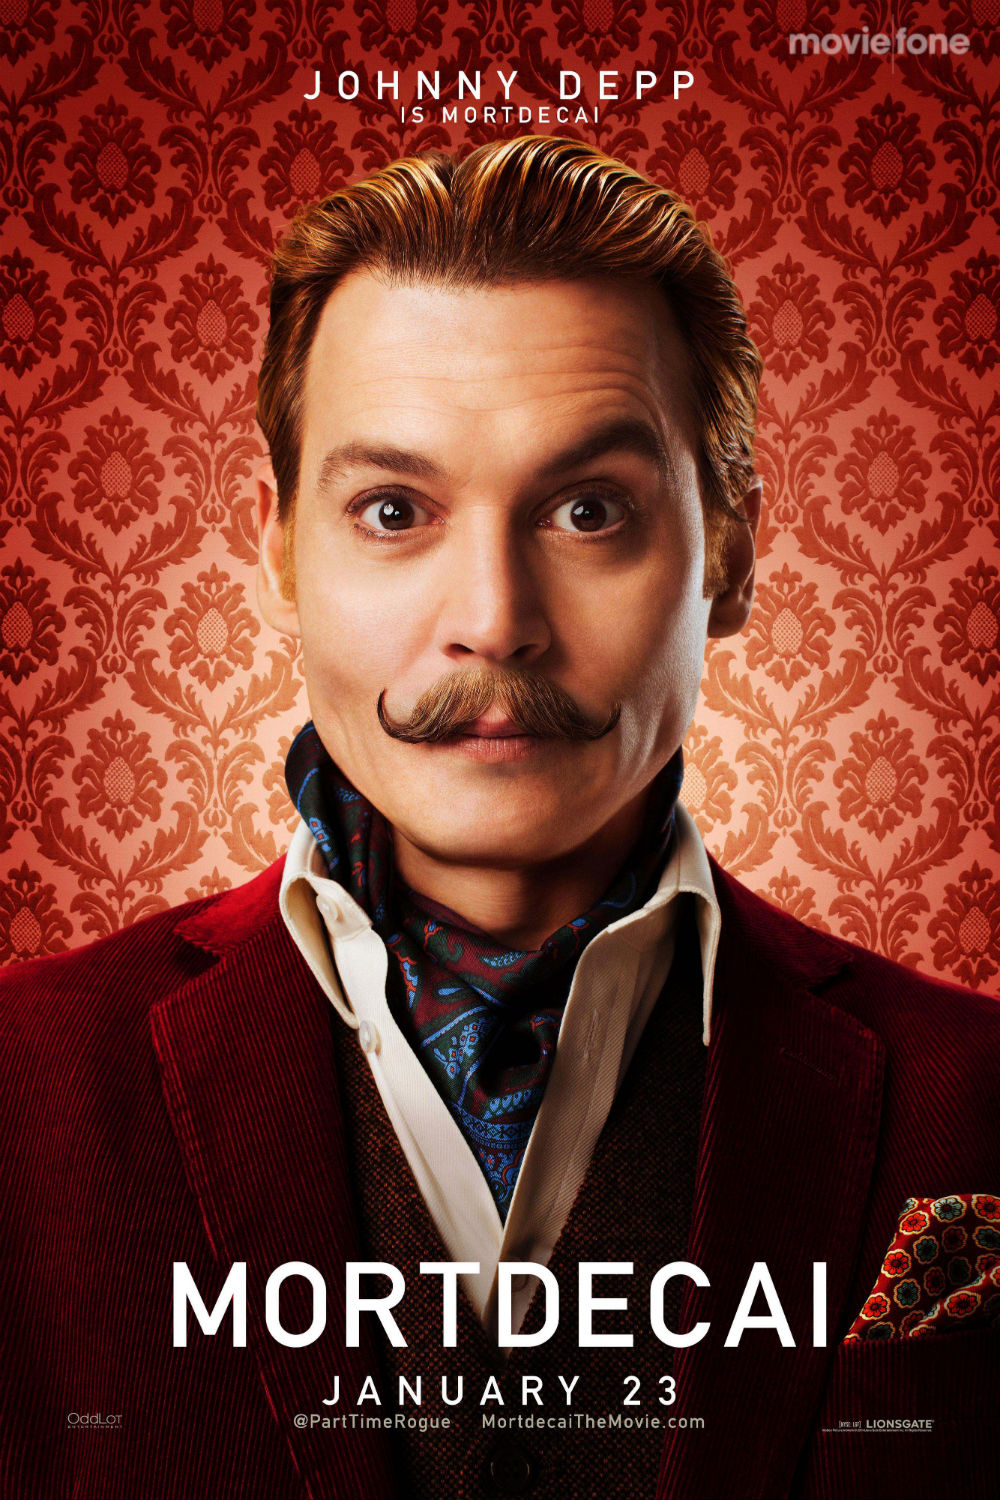 Le Mort De Mortdecai: Johnny Depp is Box Office Poison